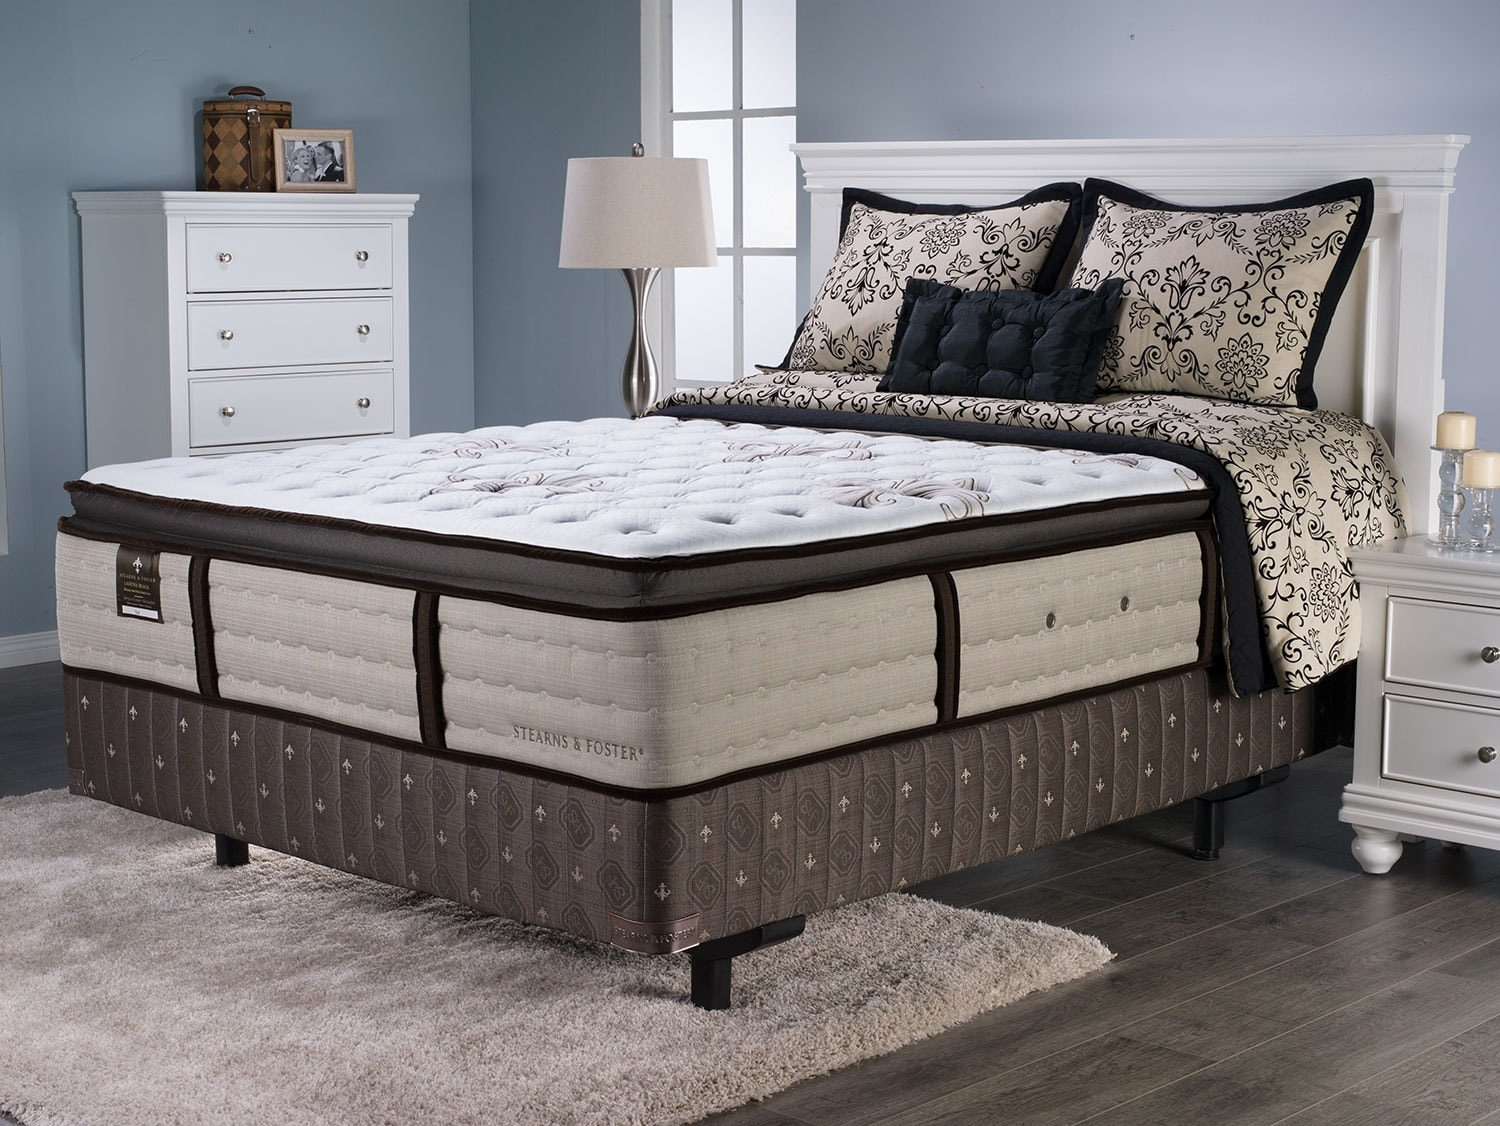 Stearns and Foster Laguna Beach Pillow-Top King Mattress Set